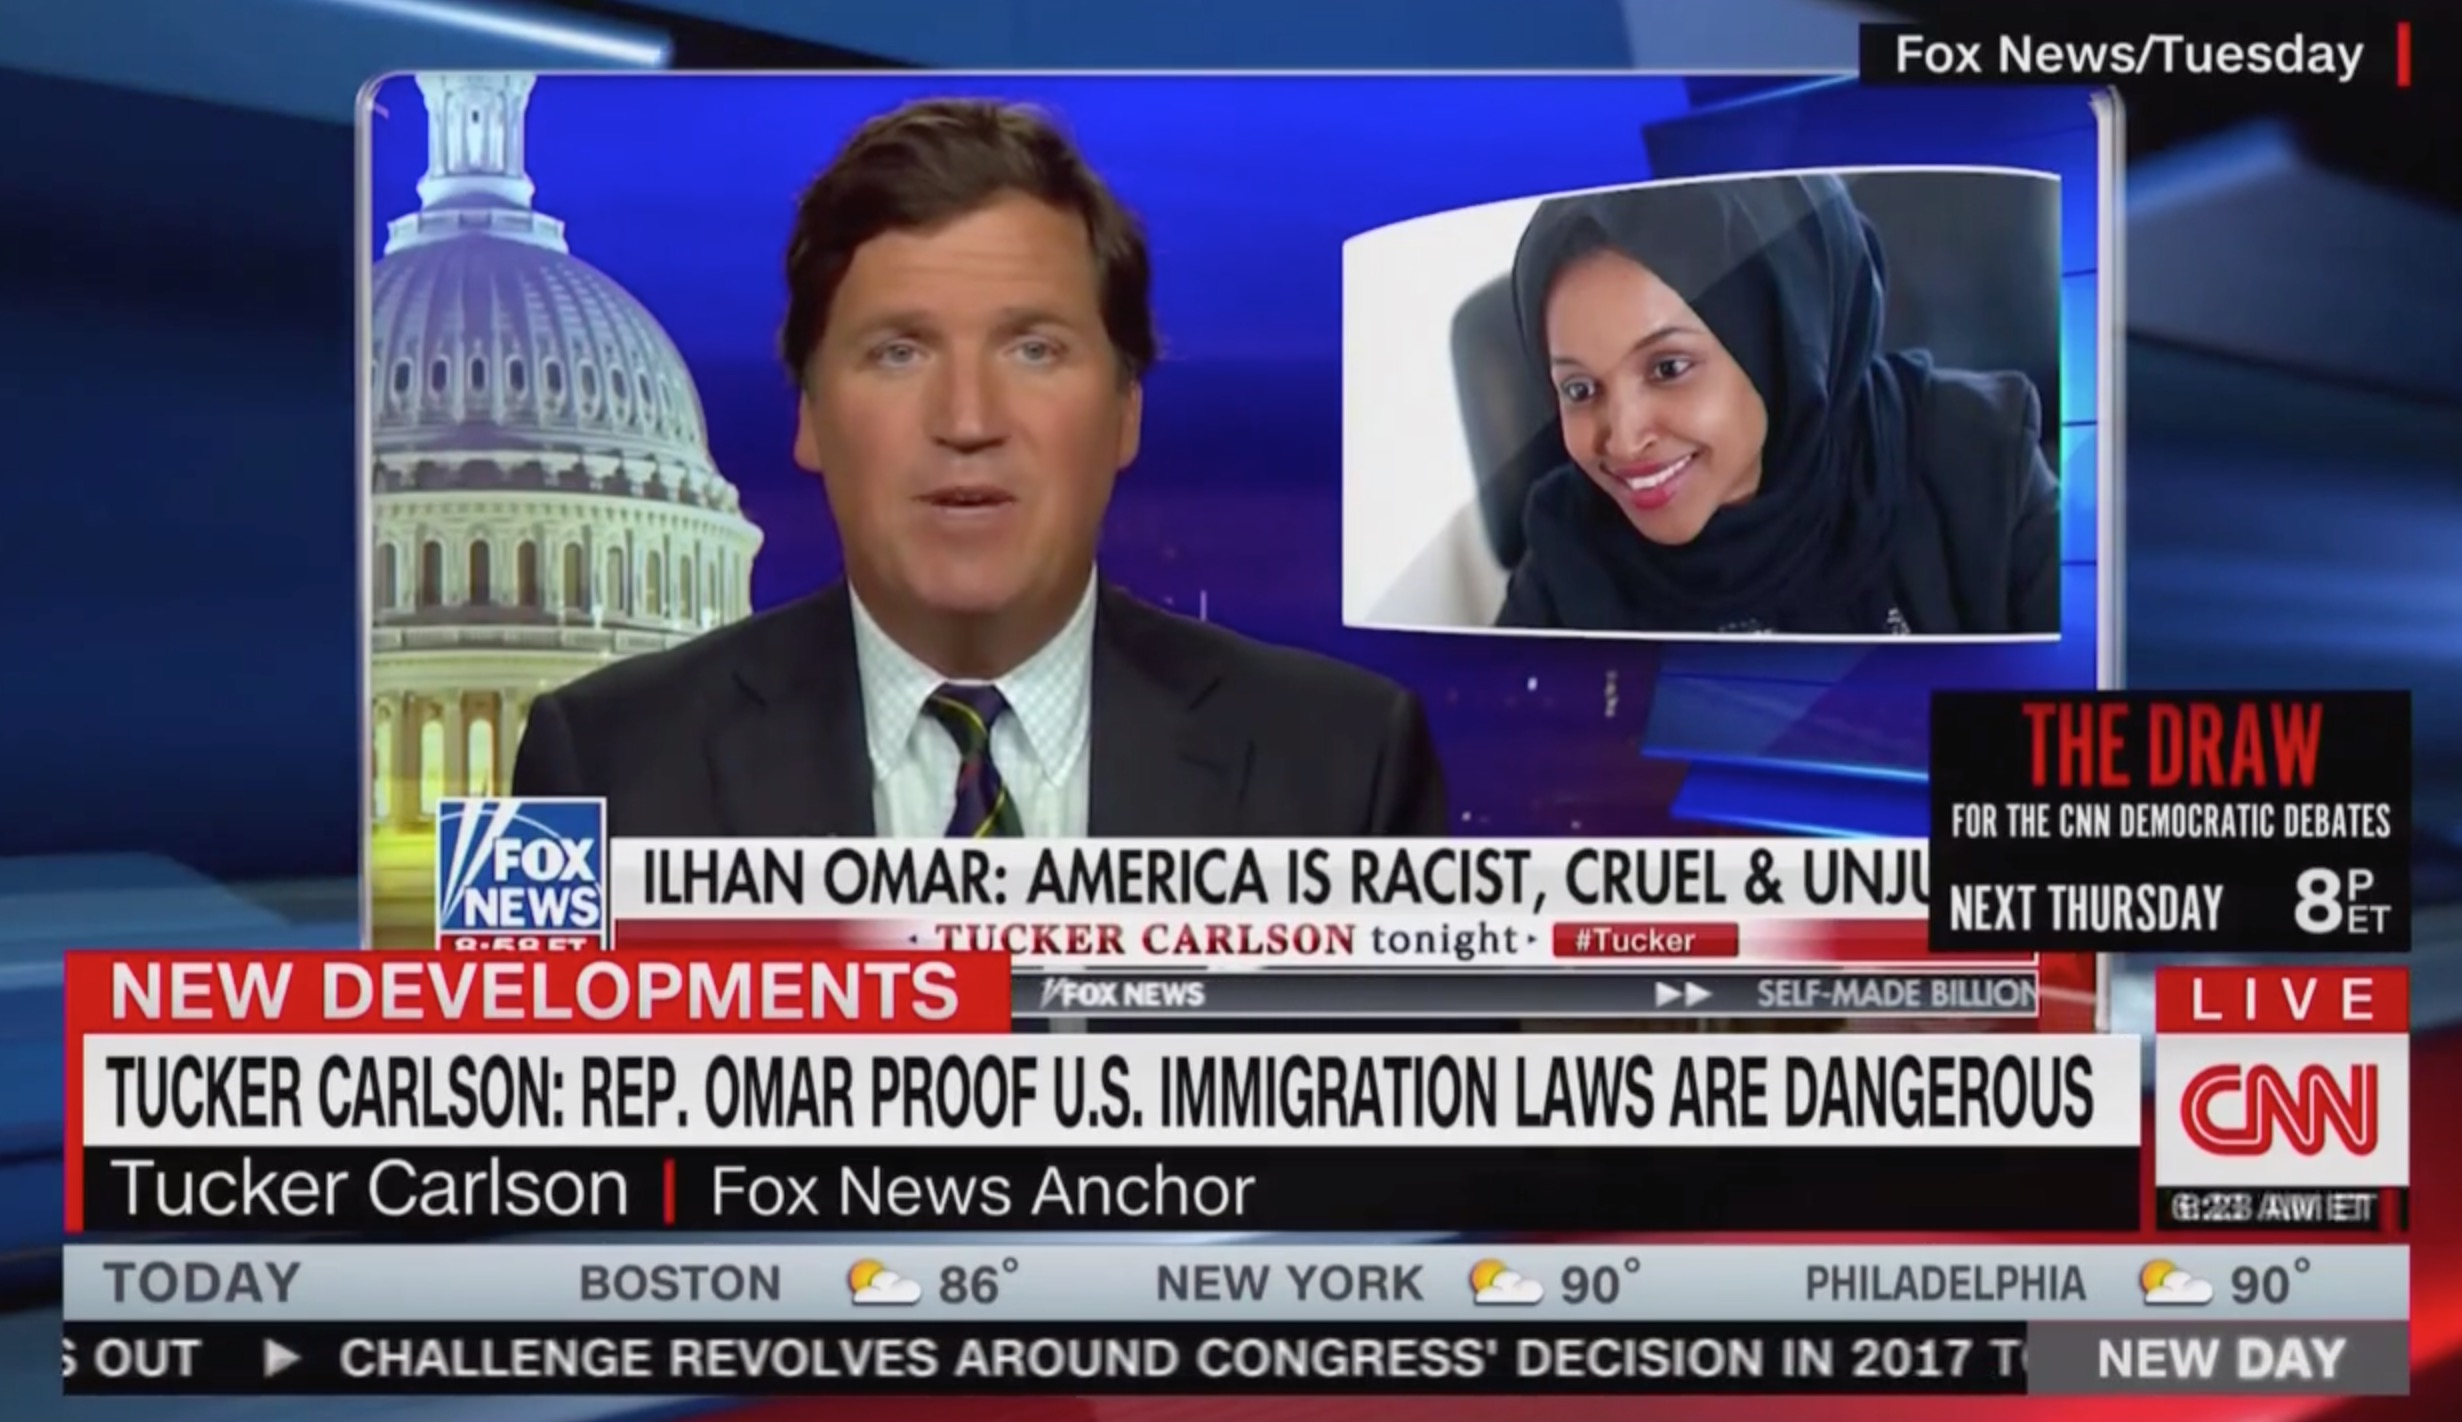 CNN New Day Blasts Tucker Carlson's 'Flat Out Racist Comment' on Ilhan Omar: 'Garbage'